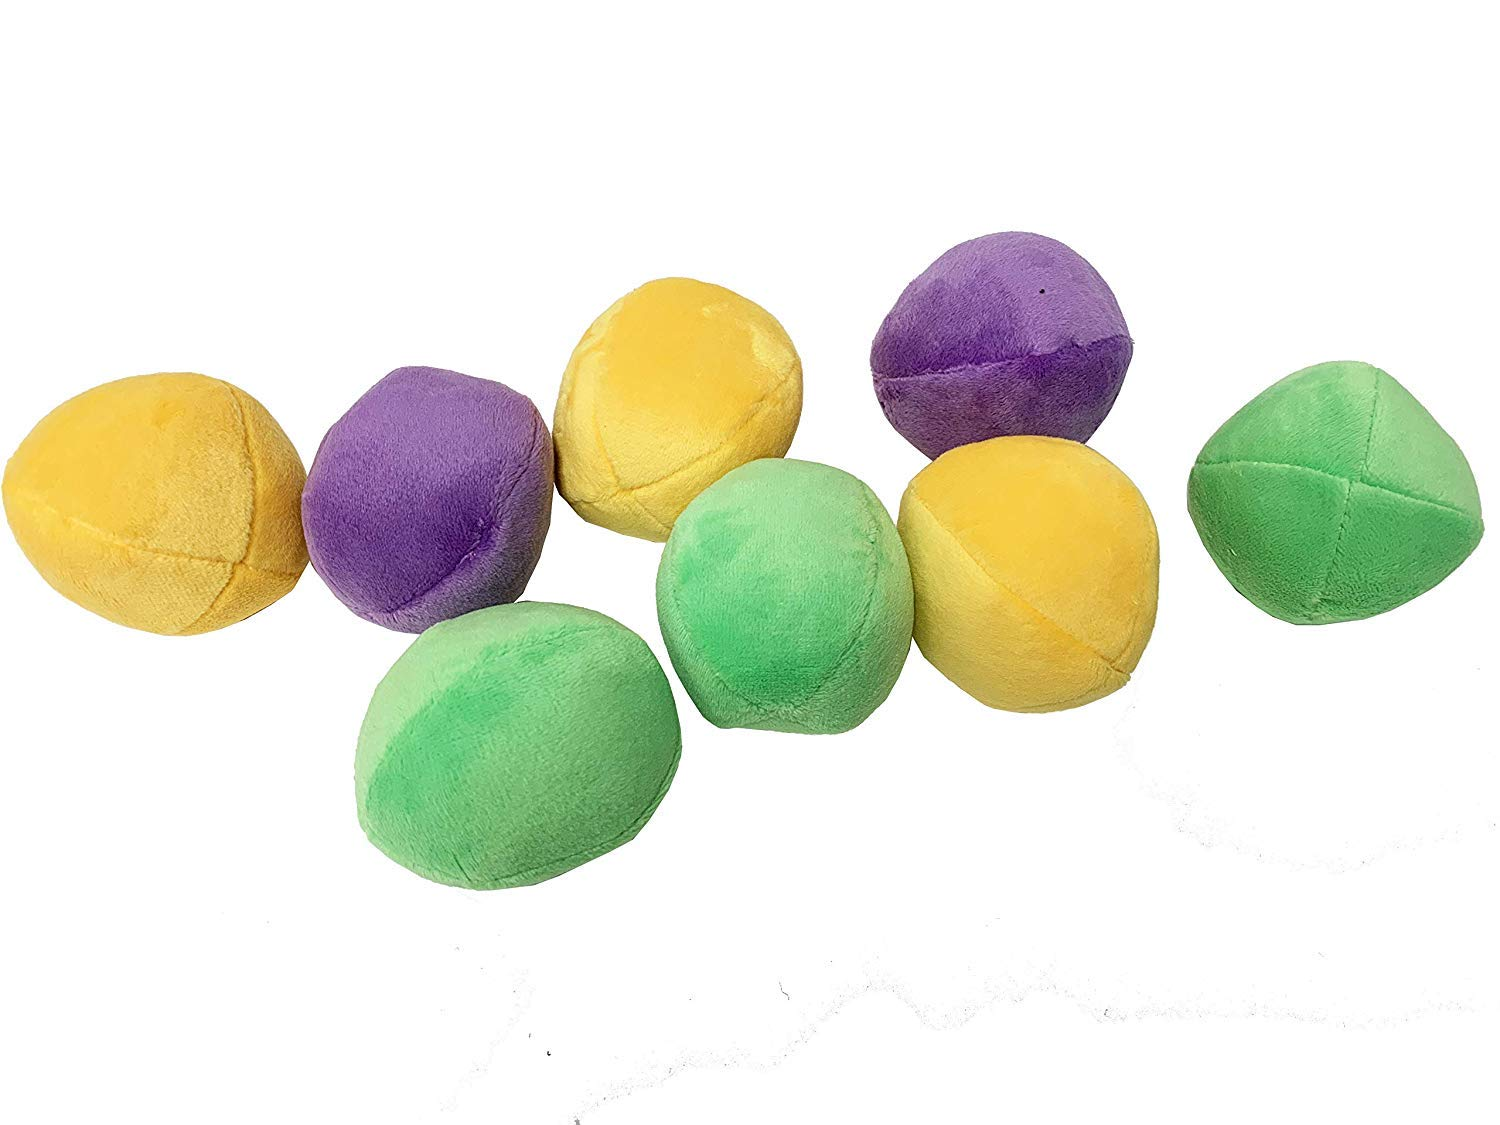 Large Midlee Squeaky and Crinkley 3 1 2  Plush Dog Balls, Set of 8 (Refill Hide a Ball)